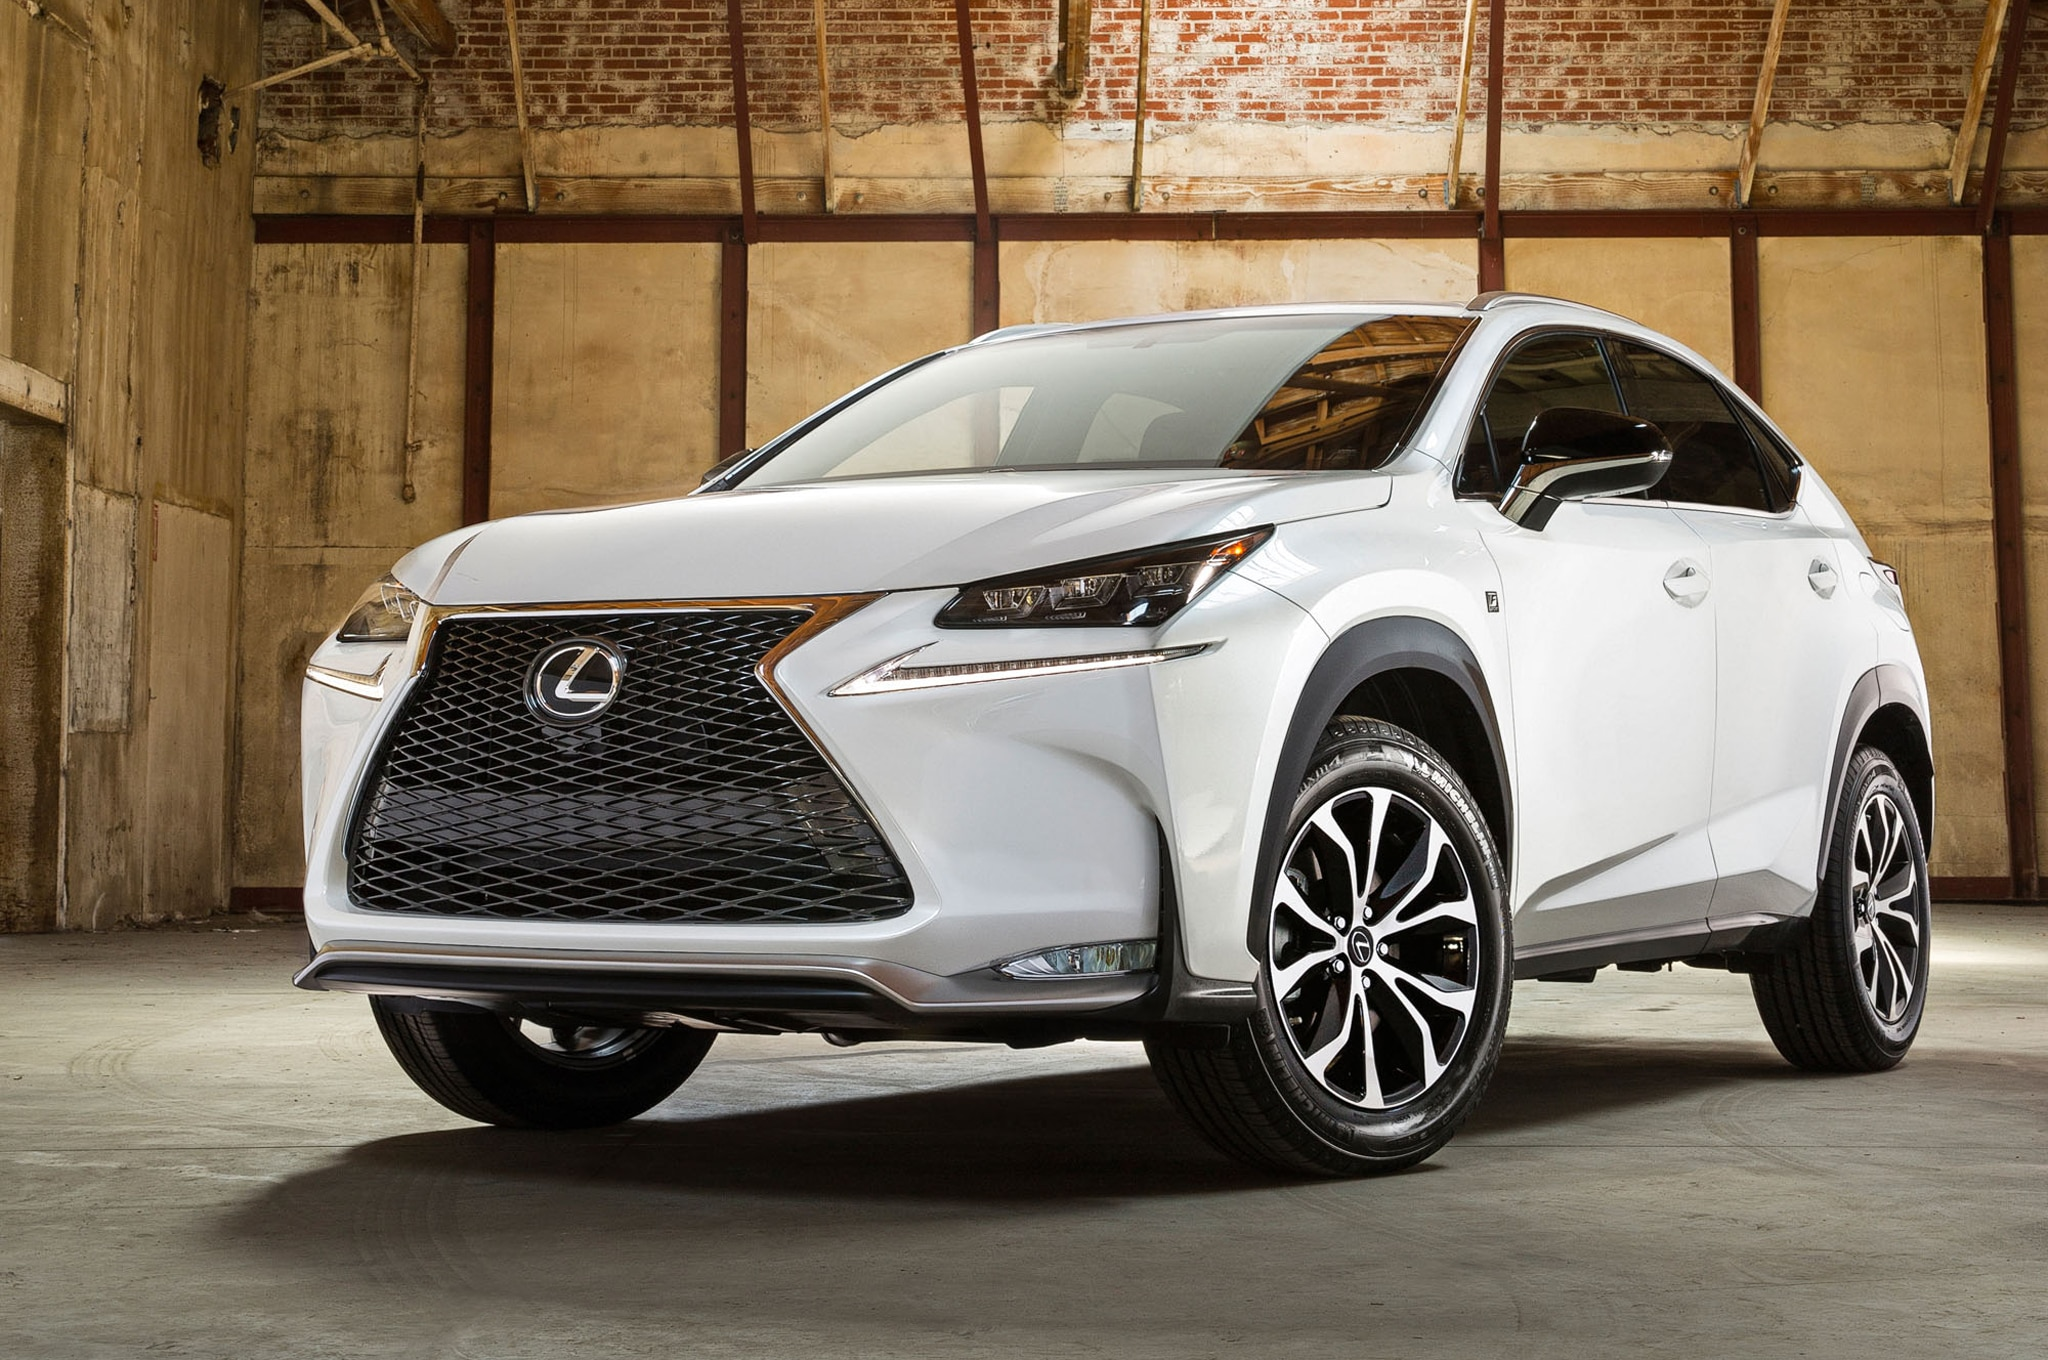 2015 lexus nx 200t revealed at beijing auto show automobile magazine. Black Bedroom Furniture Sets. Home Design Ideas